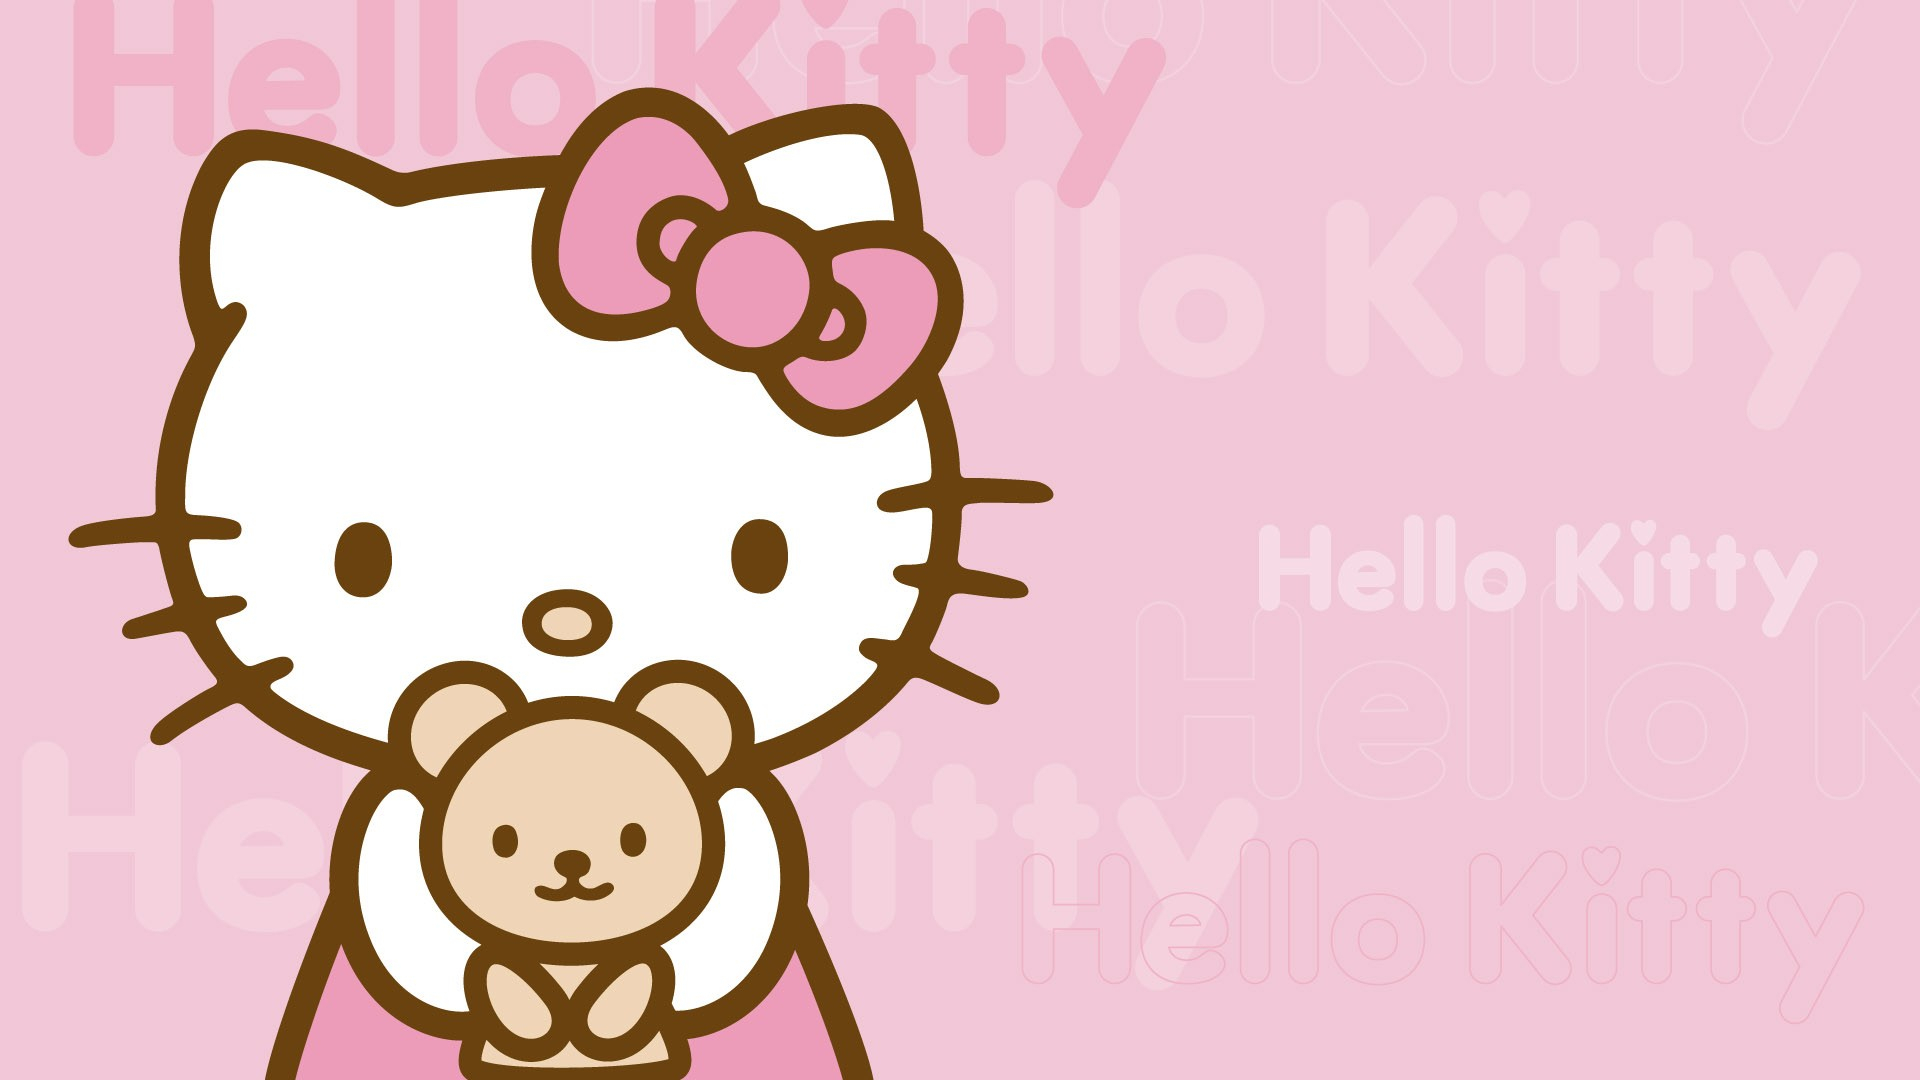 hello kitty desktop background - 8wallpapers